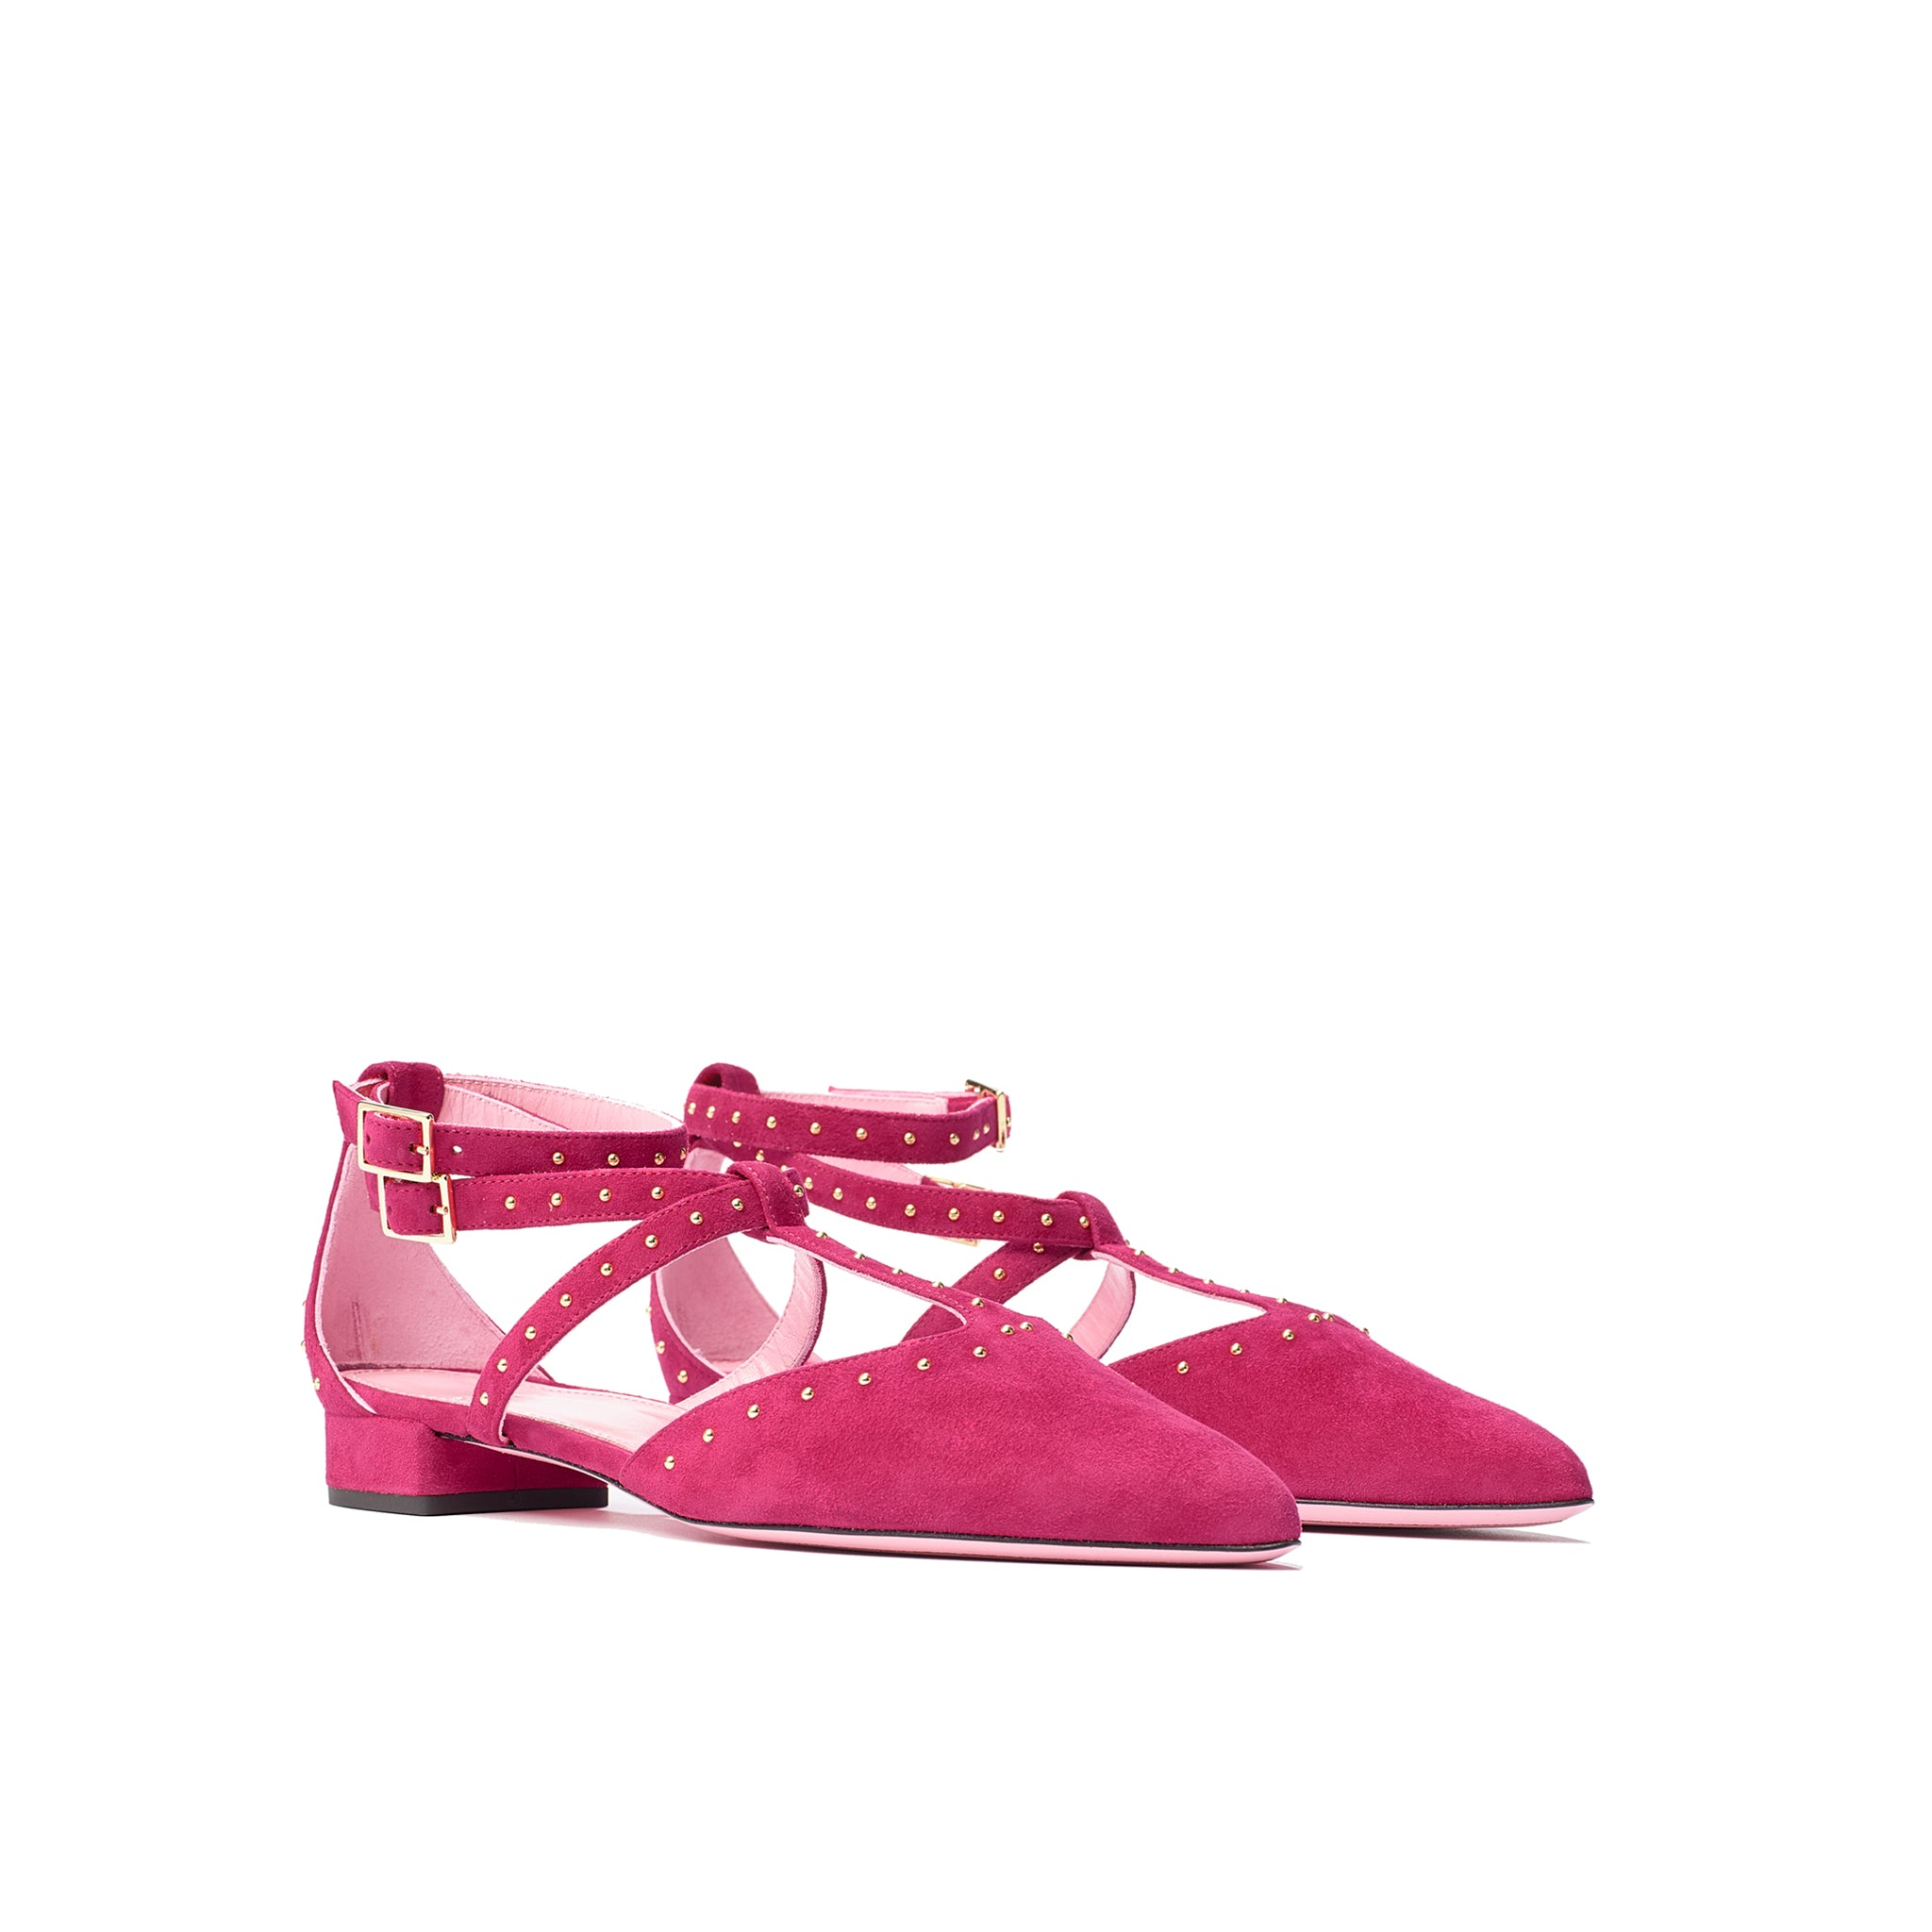 Phare Studded pointed flat in azalea suede with gold studs 3/4 view